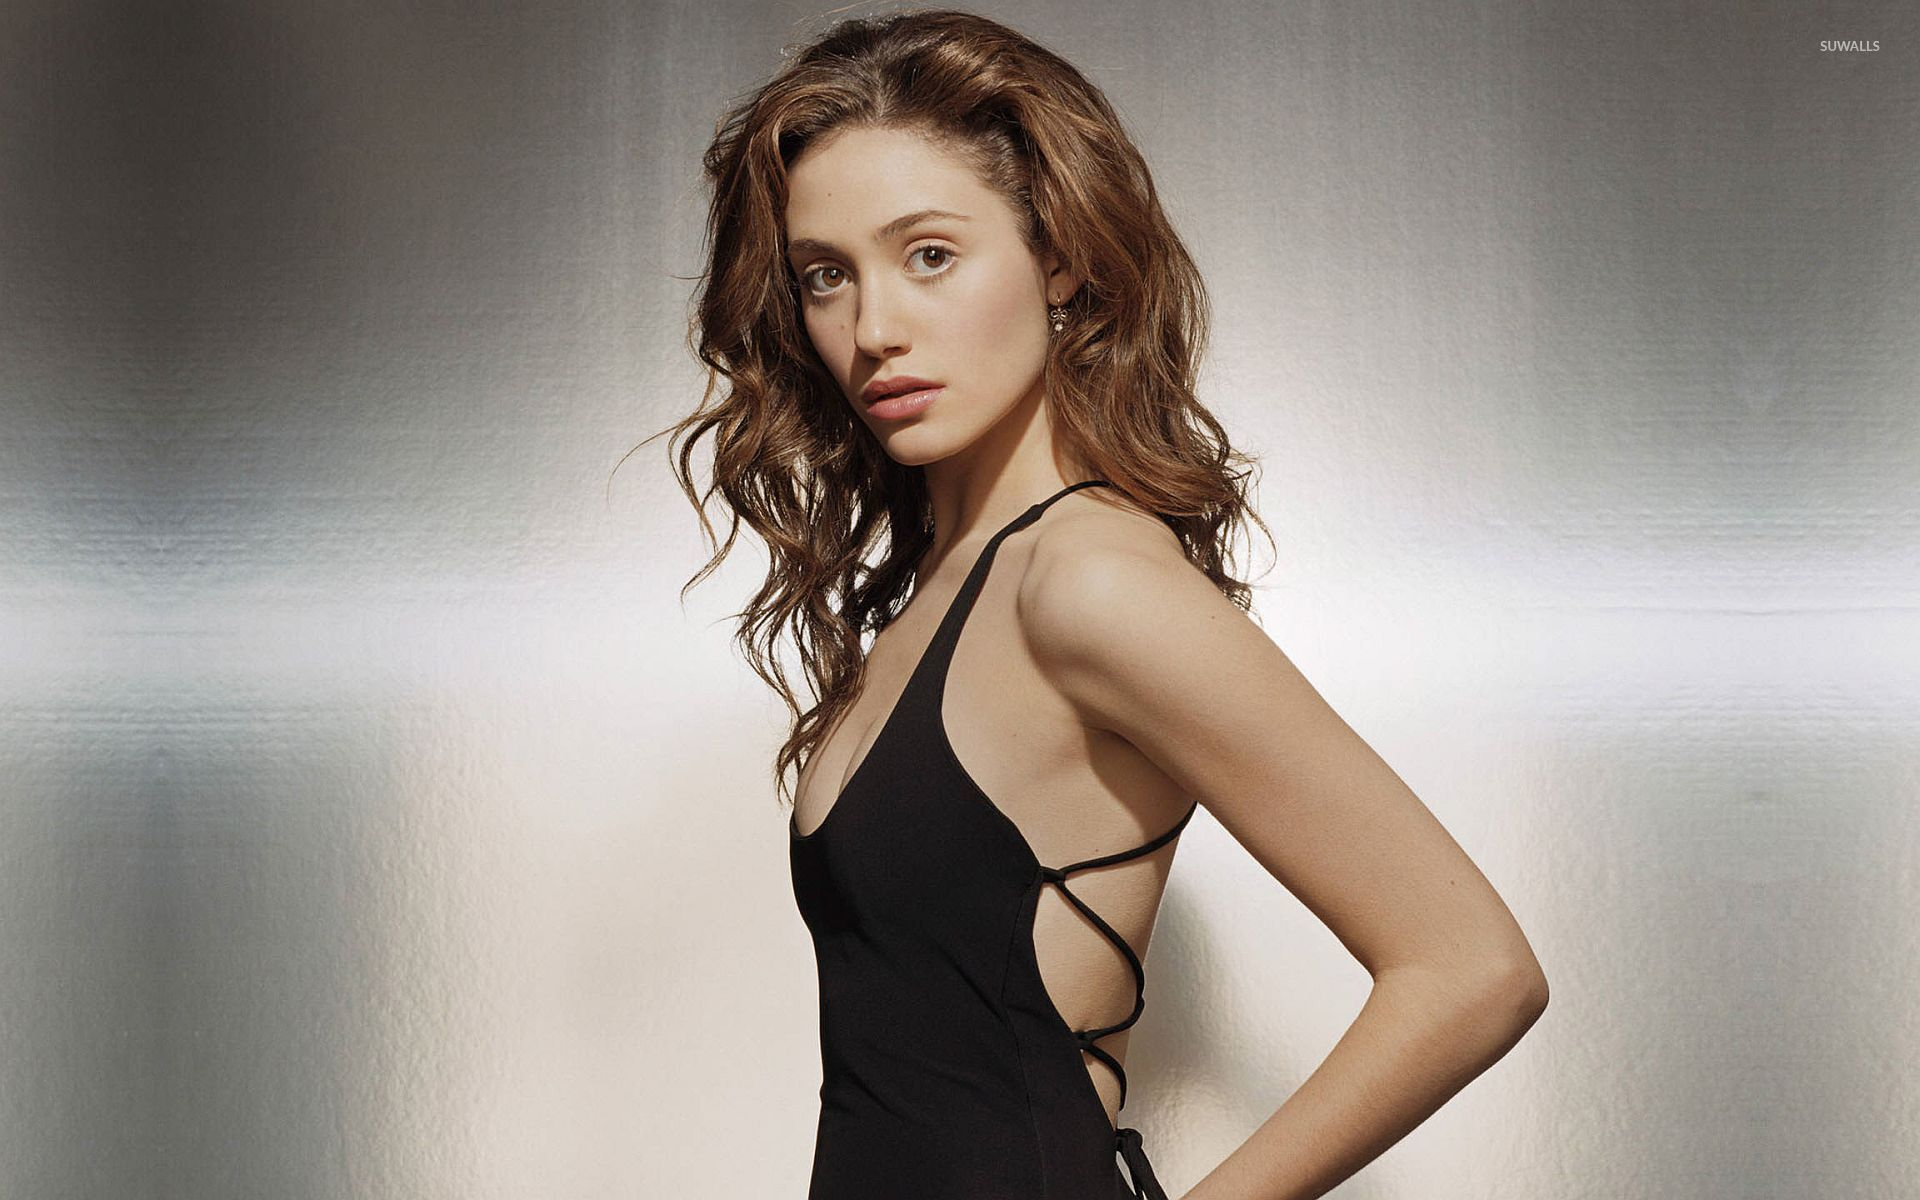 emmy rossum hd wallpapers and backgrounds | hd wallpapers